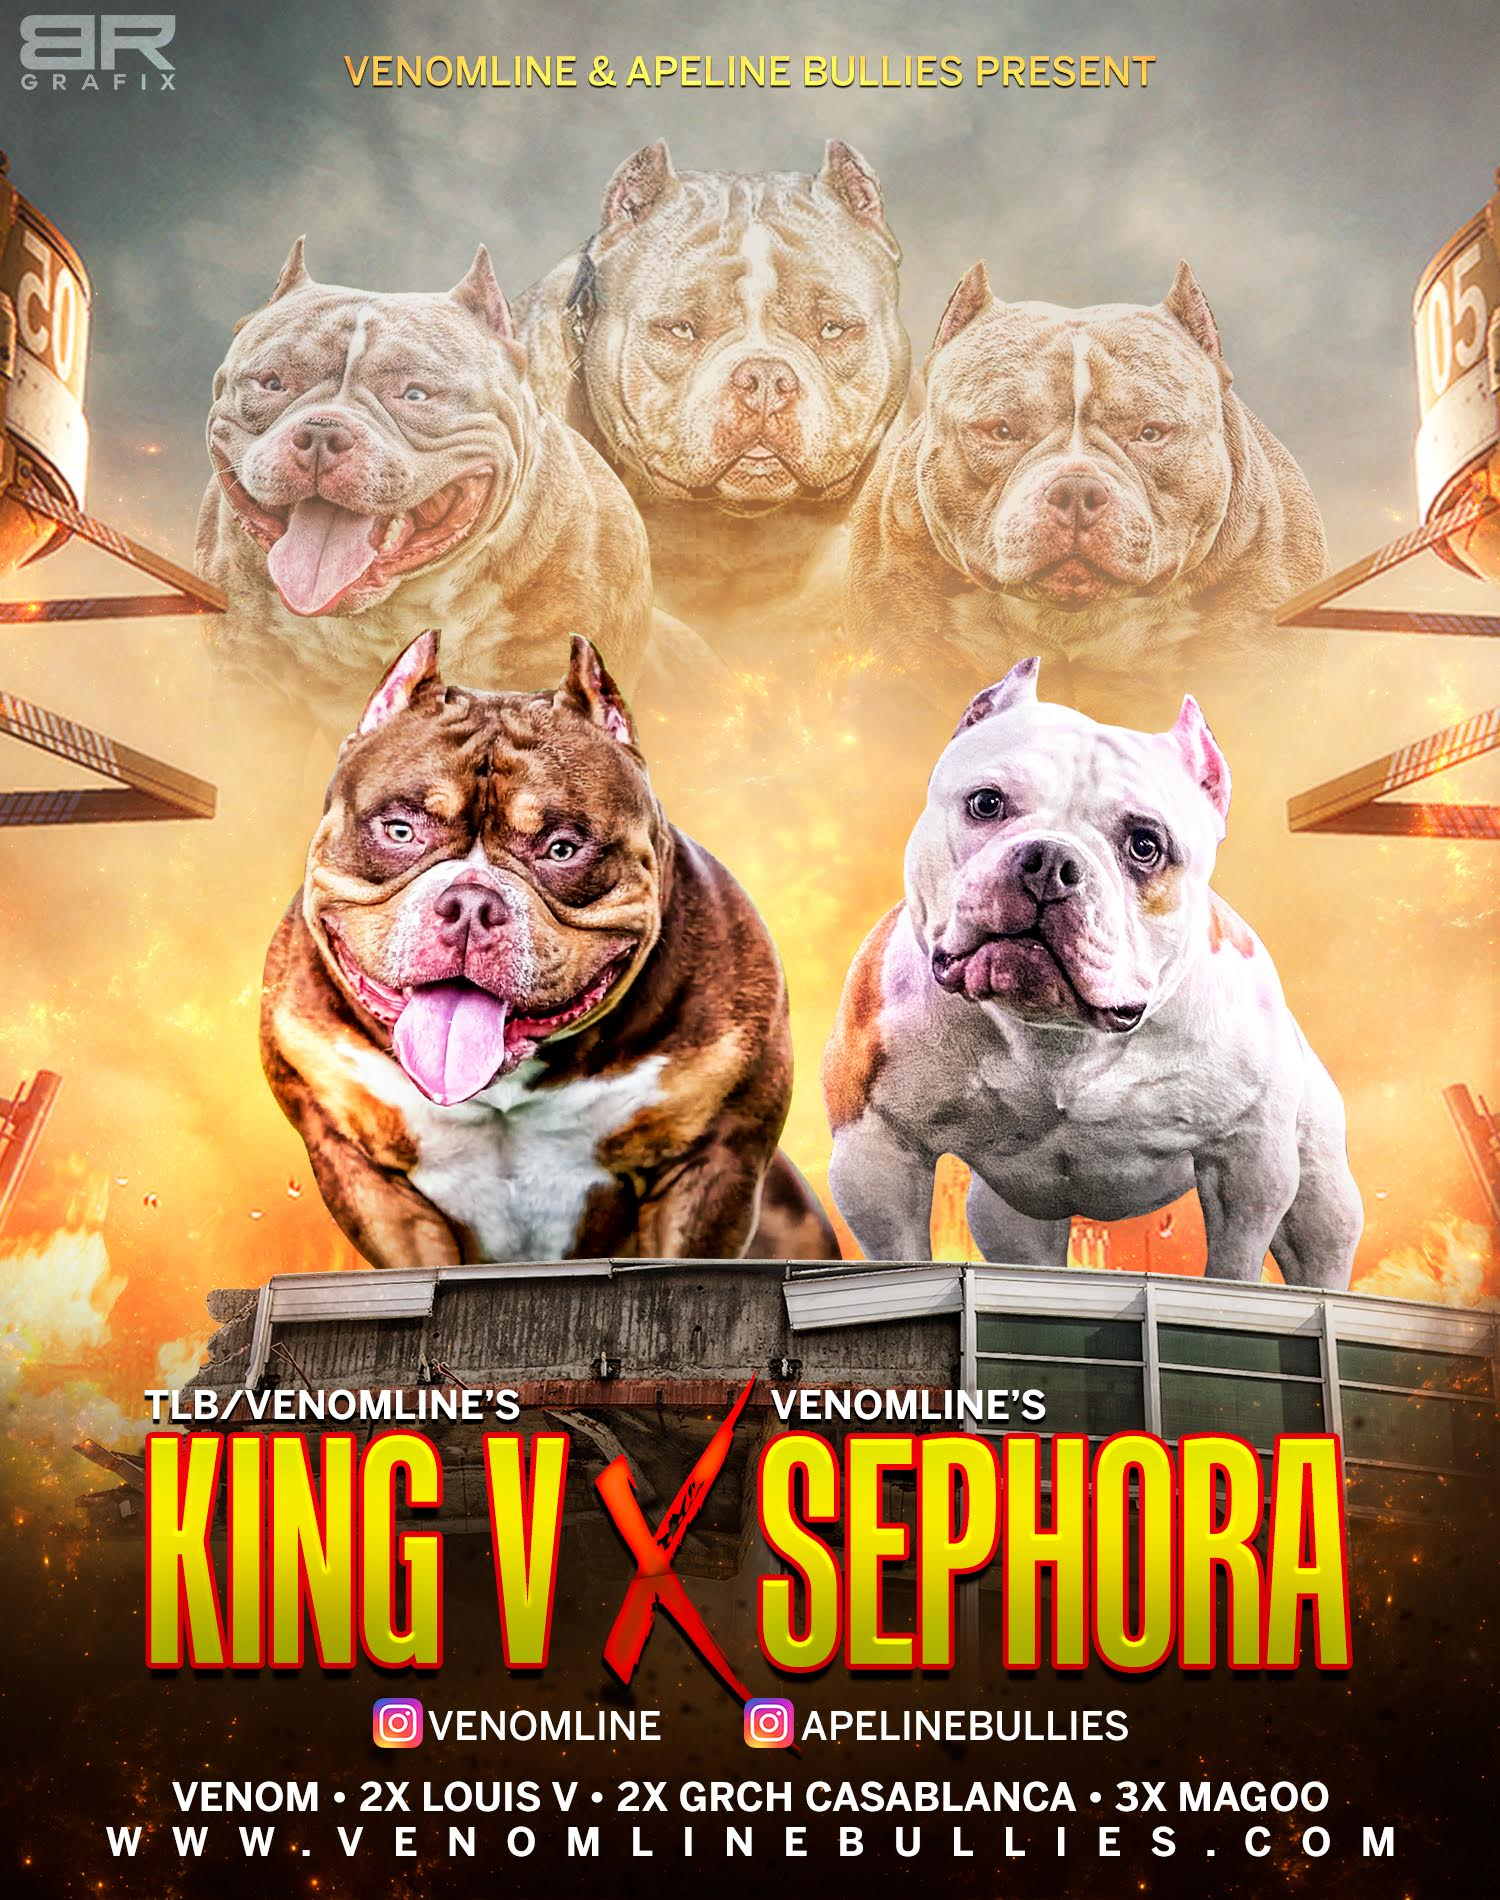 Top American Bully Breeders, American Bully Kennels, Pocket Bully Kennels, Pocket Bully Breeders, Pocket Bully Kennels, Best Pocket Bully Breeders, Best Pocket Bully Kennels, Top Pocket Bully Studs, Venomline, Pocket American Bully, Puppies for Sale, Micro, Extreme, Pocket, Tri Color, Bullys